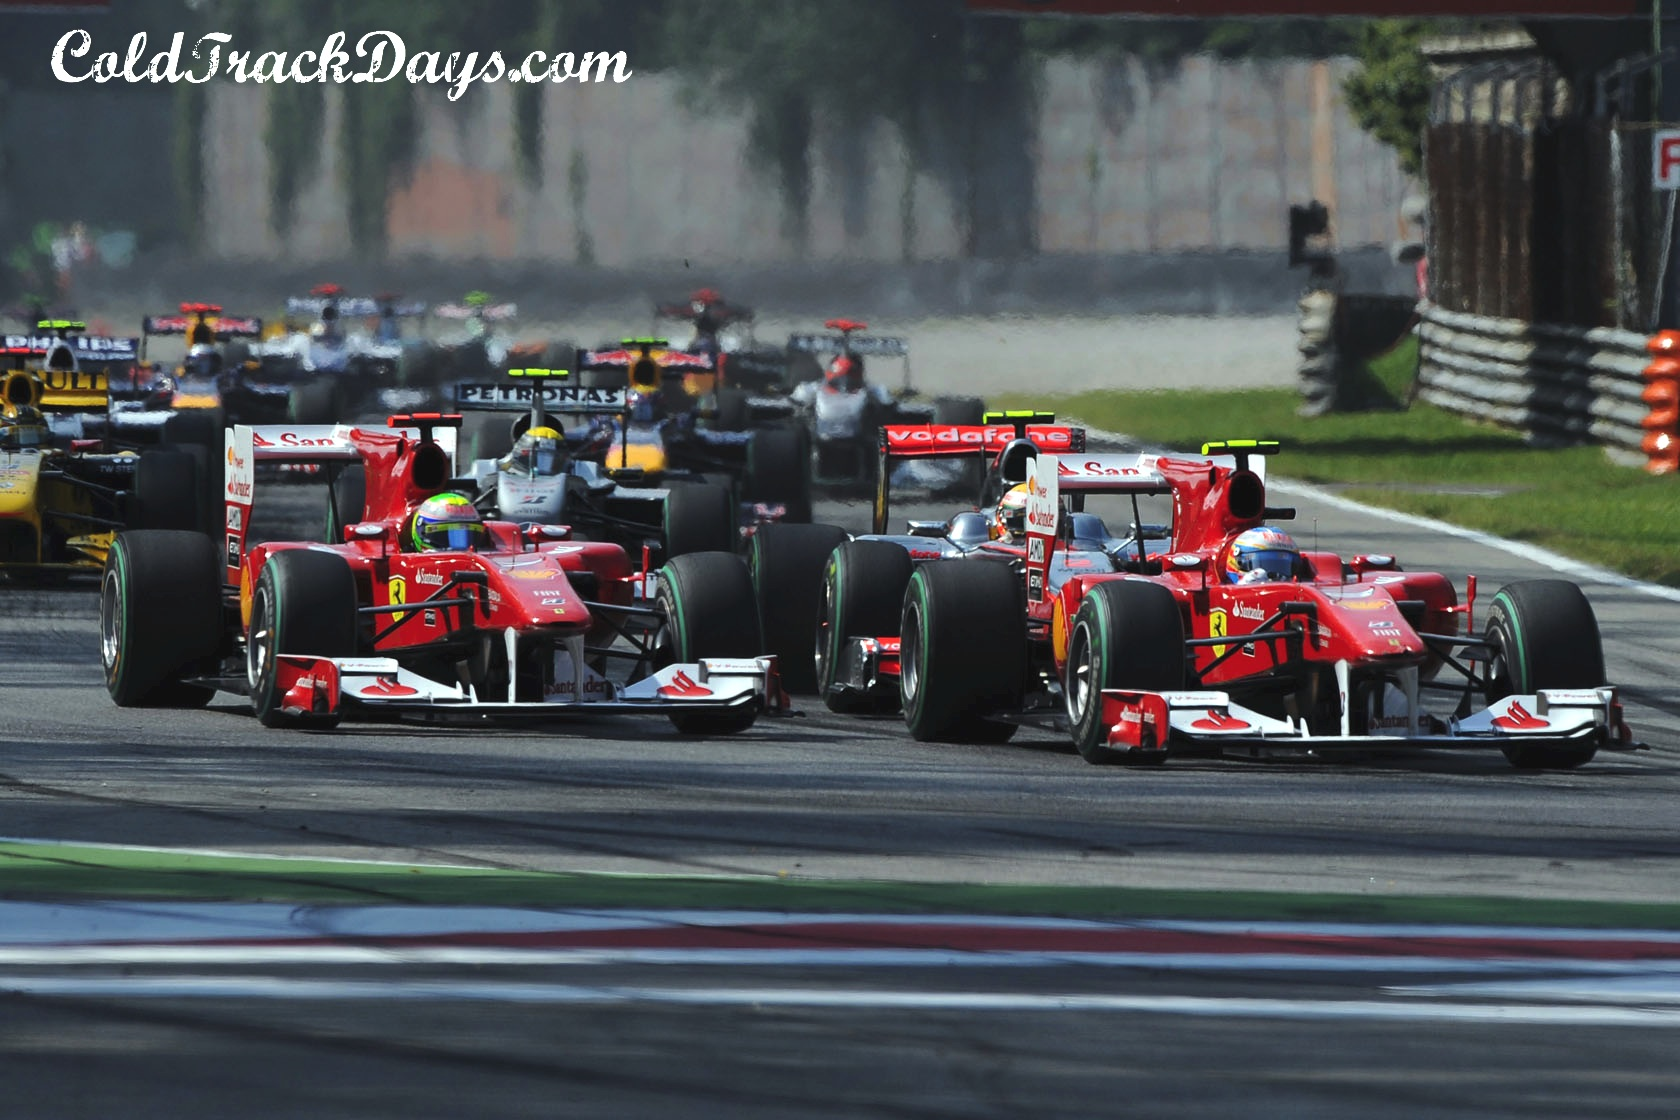 2010 ITALIAN GRAND PRIX // RACE RESULTS